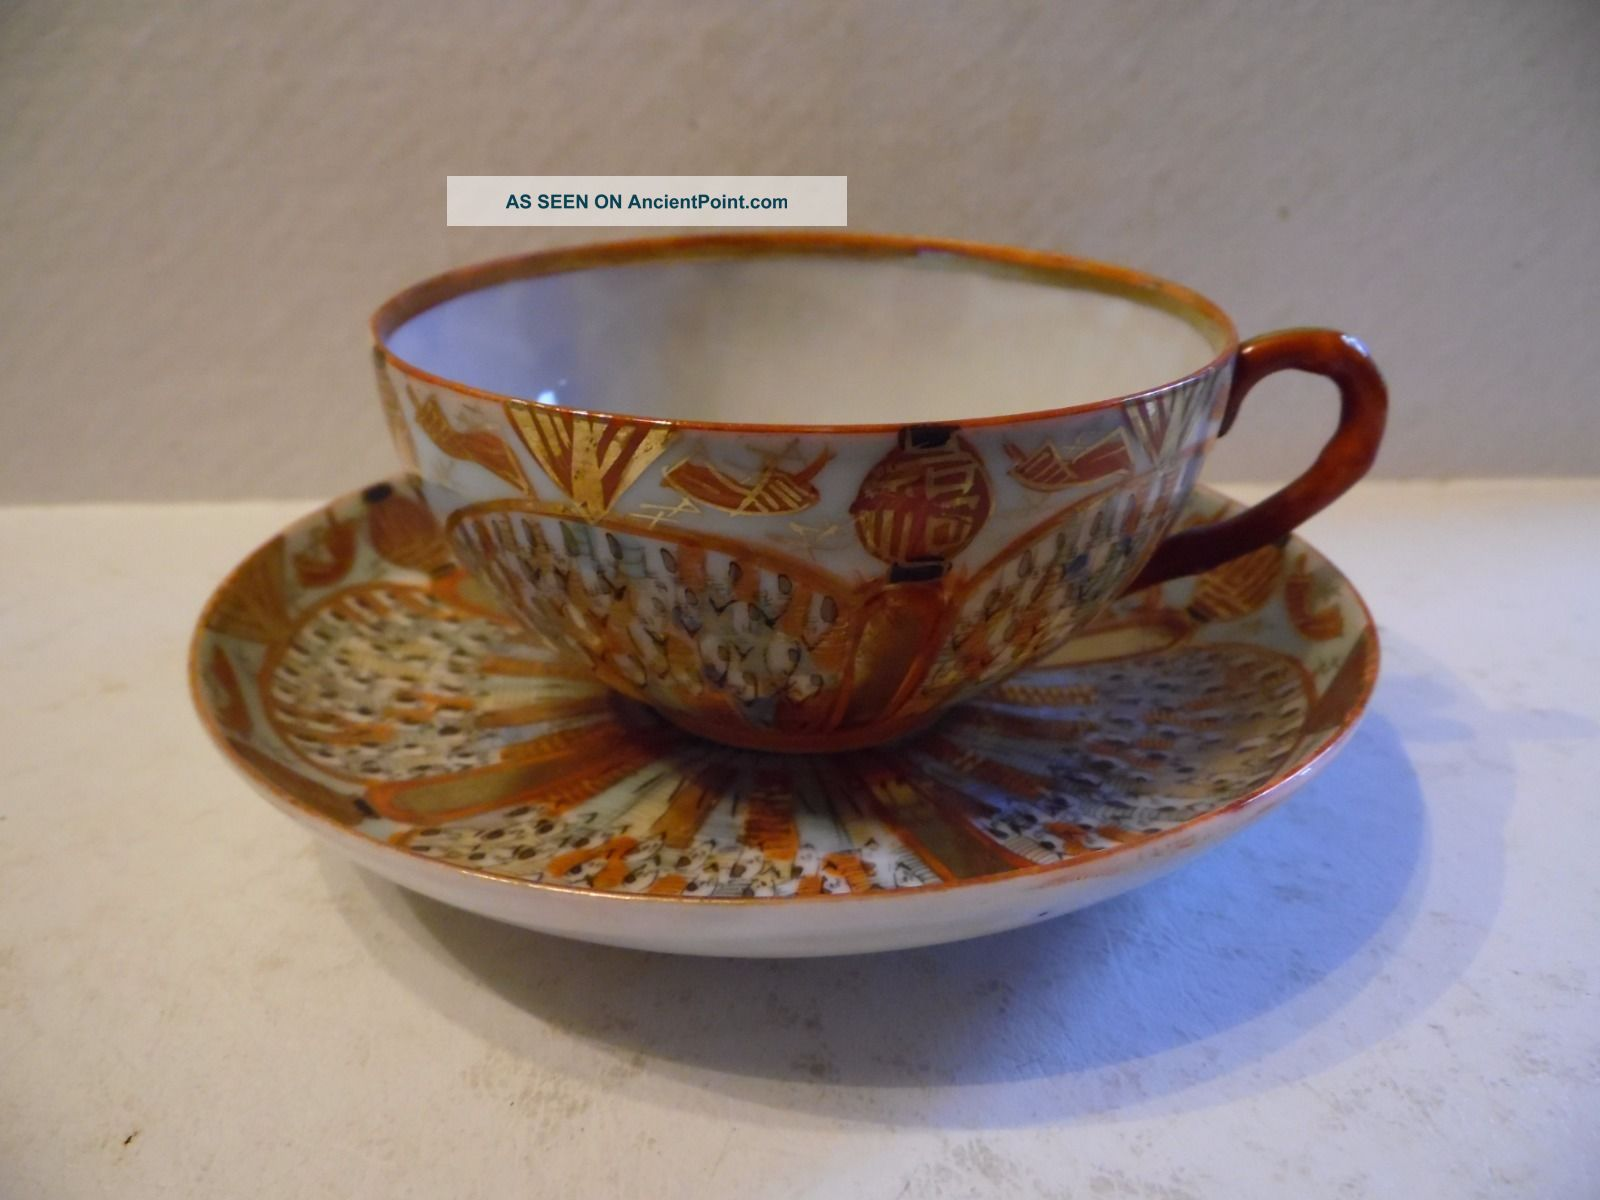 Vintage Hand Painted Asian Tea Cup & Saucer Boat Dragon Lanterns Cups & Saucers photo